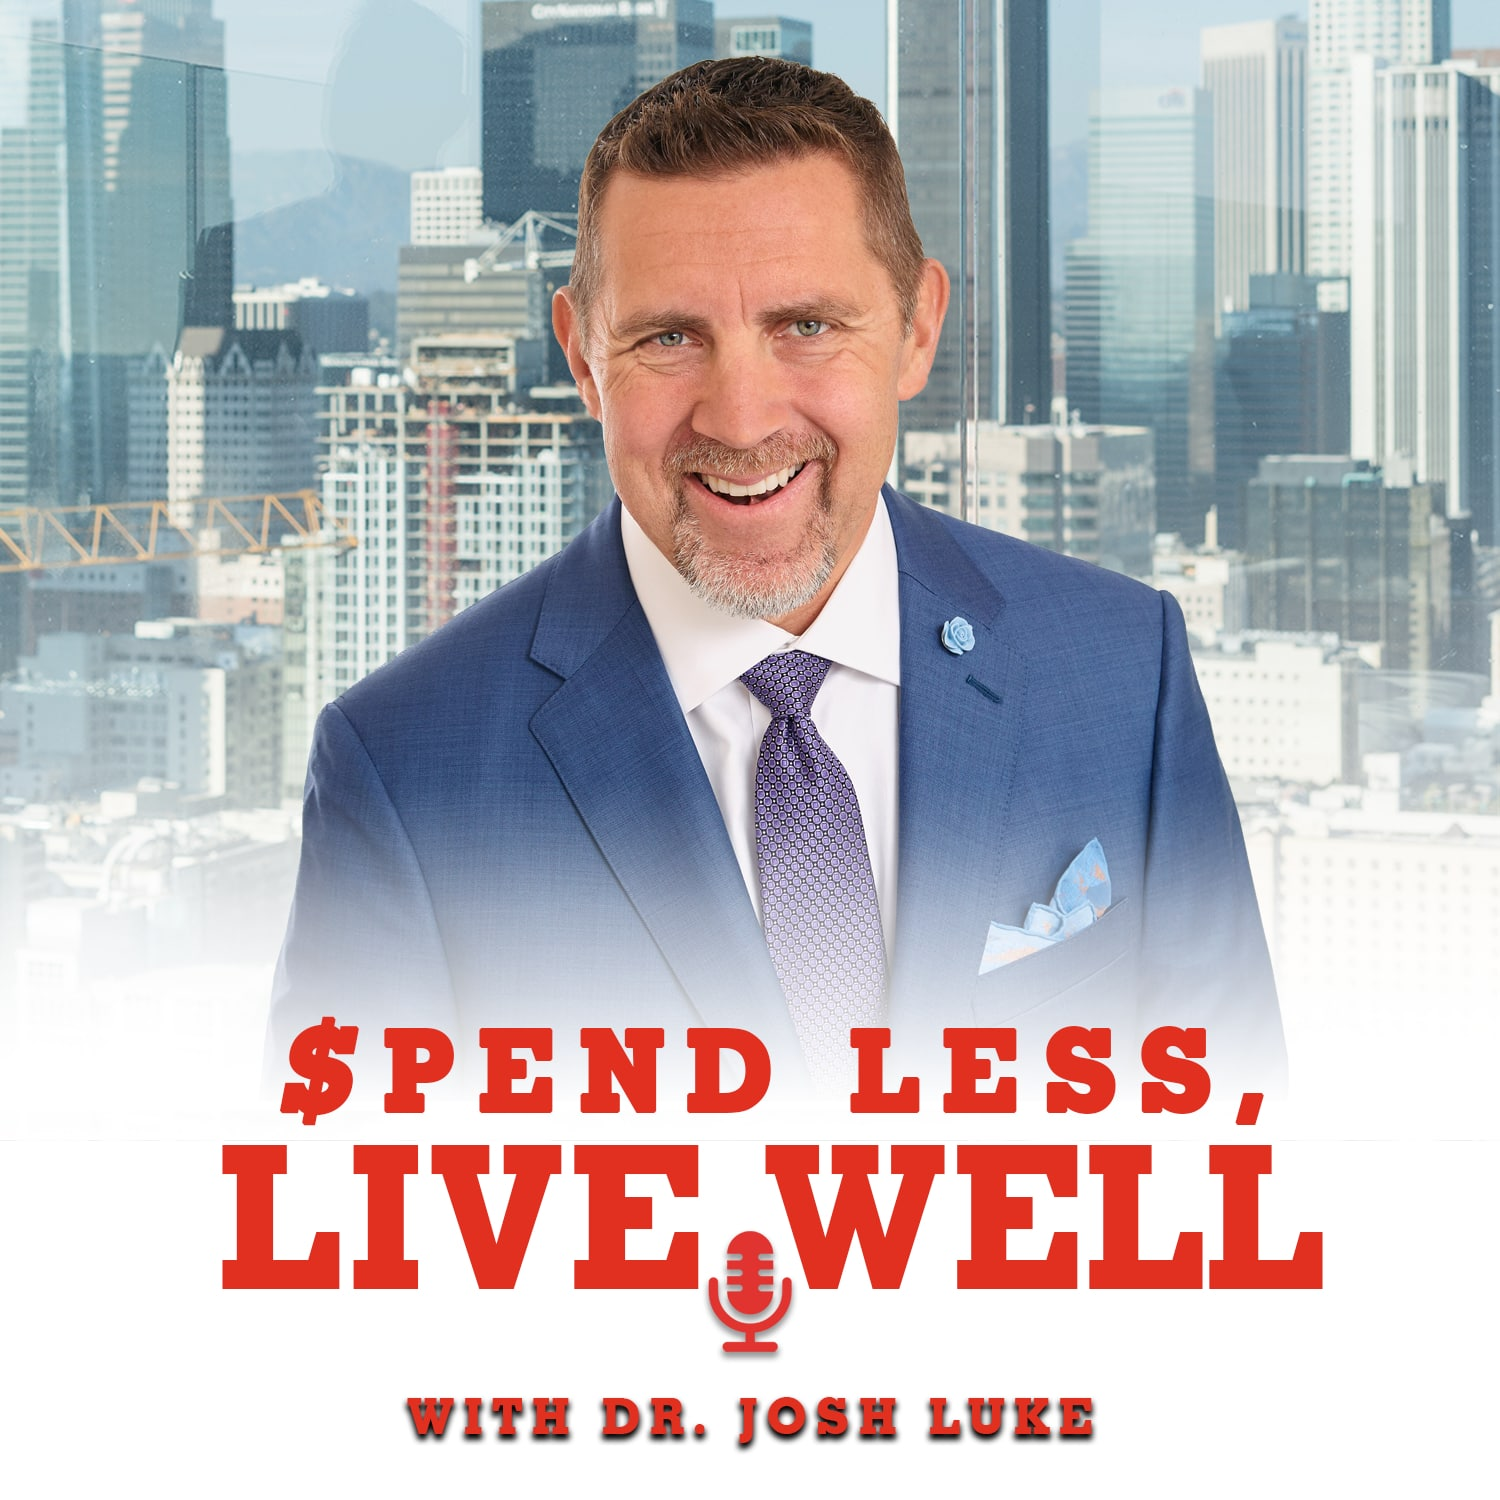 Spend Less, Live Well- With Dr. Josh Luke show art